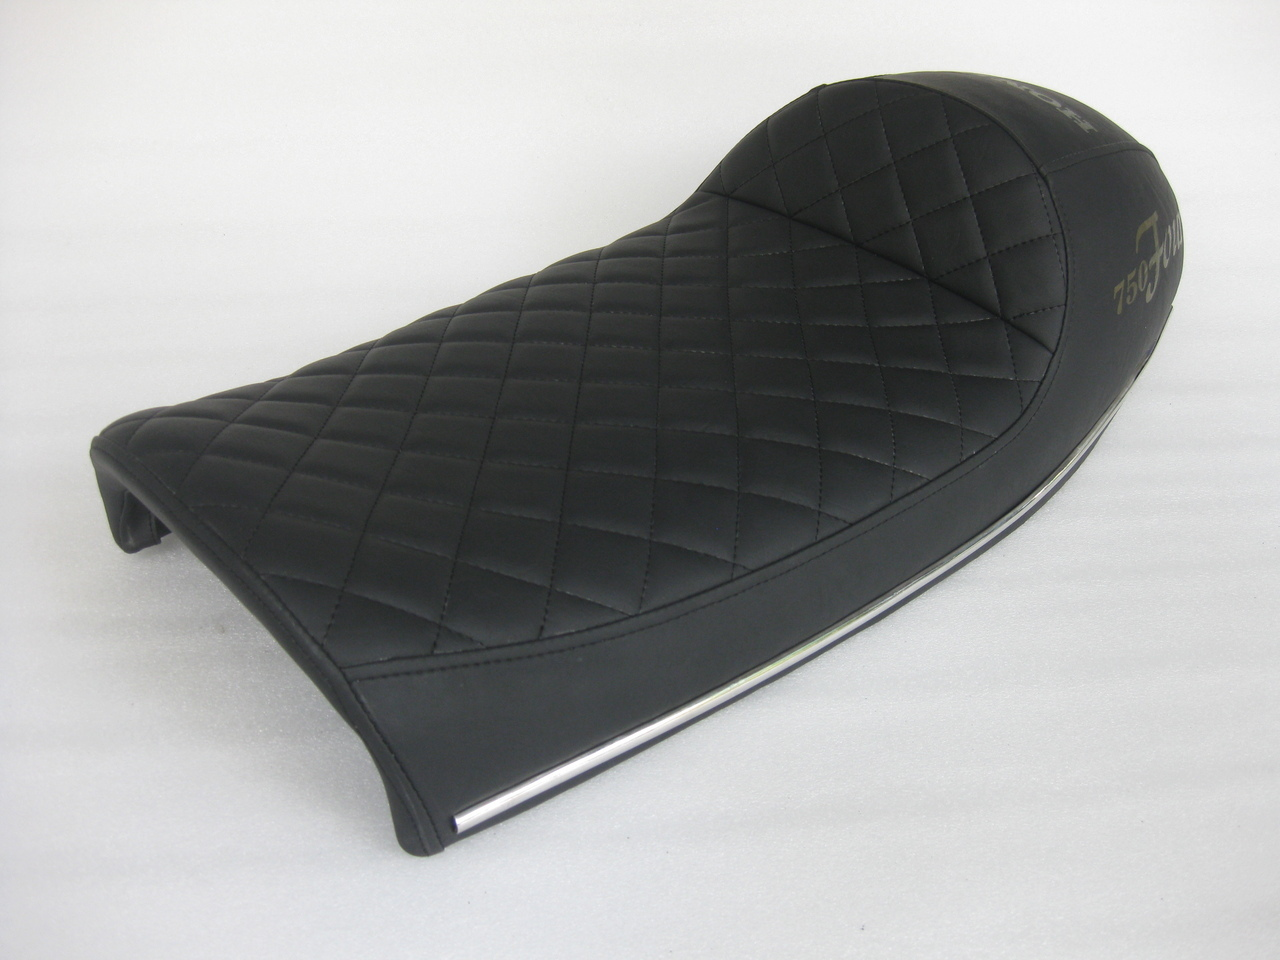 1969, 1970, 1971 Honda CB750 K0 and K1 and 1972 to 1976 K2 to K6 Complete cafe racer seat with chrome bars #4267